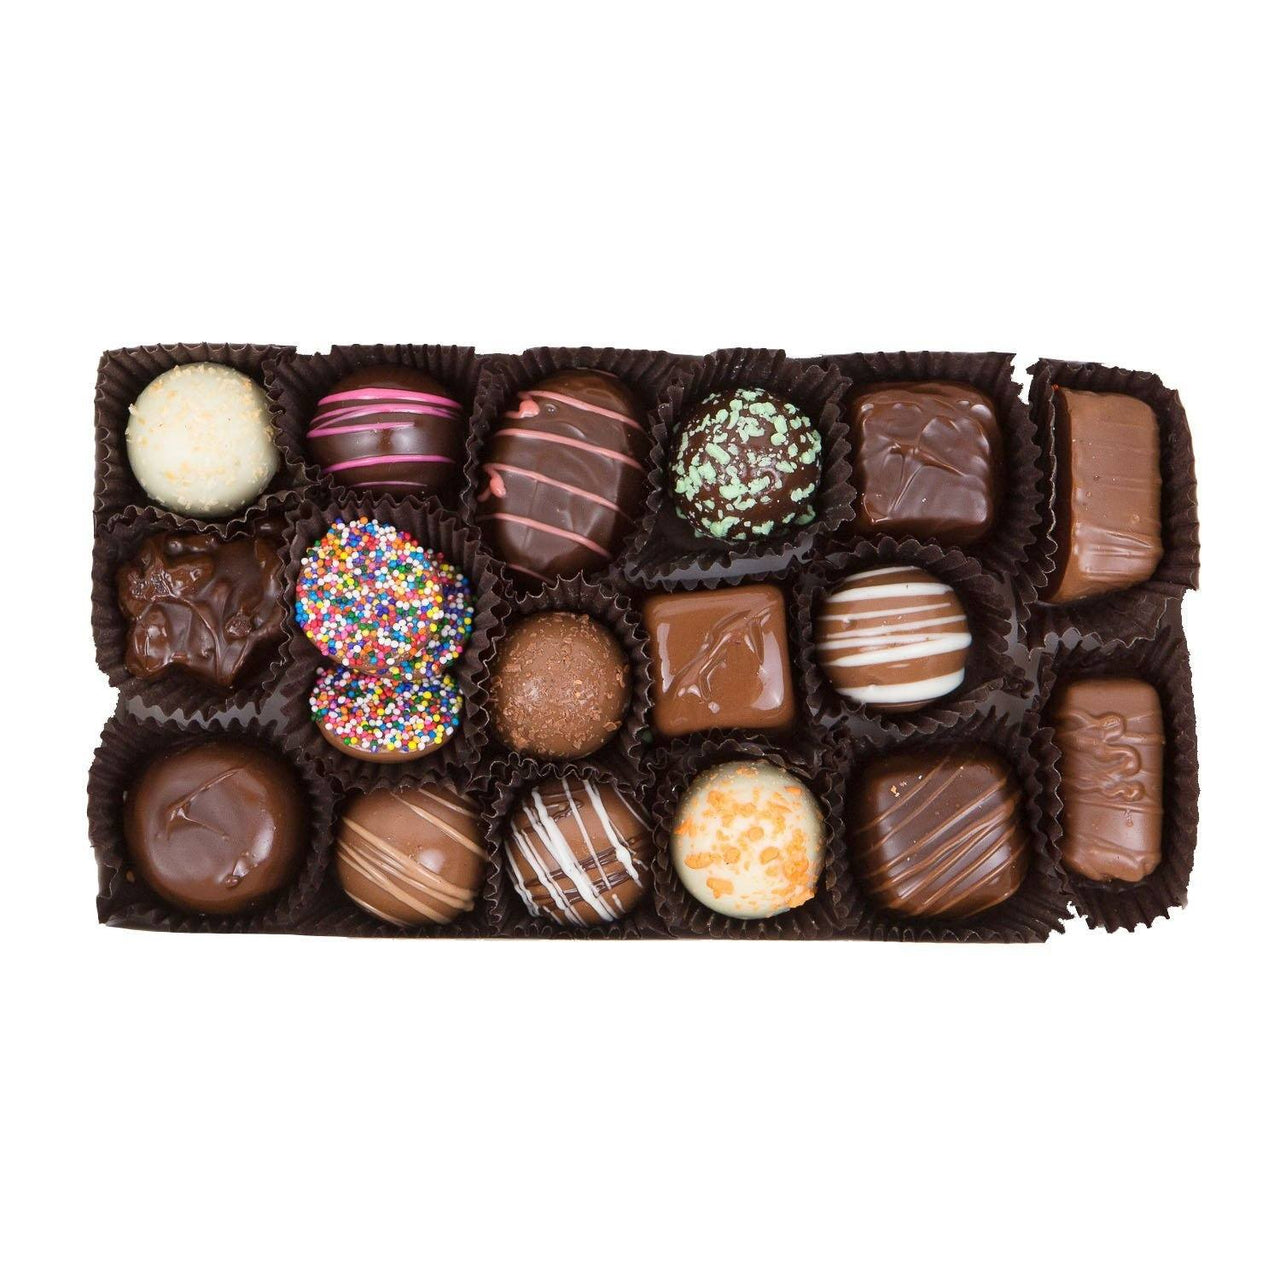 Teacher Christmas Gifts  - Chocolate Assortment Gift Box - Jackie's Chocolate (4336477143155)